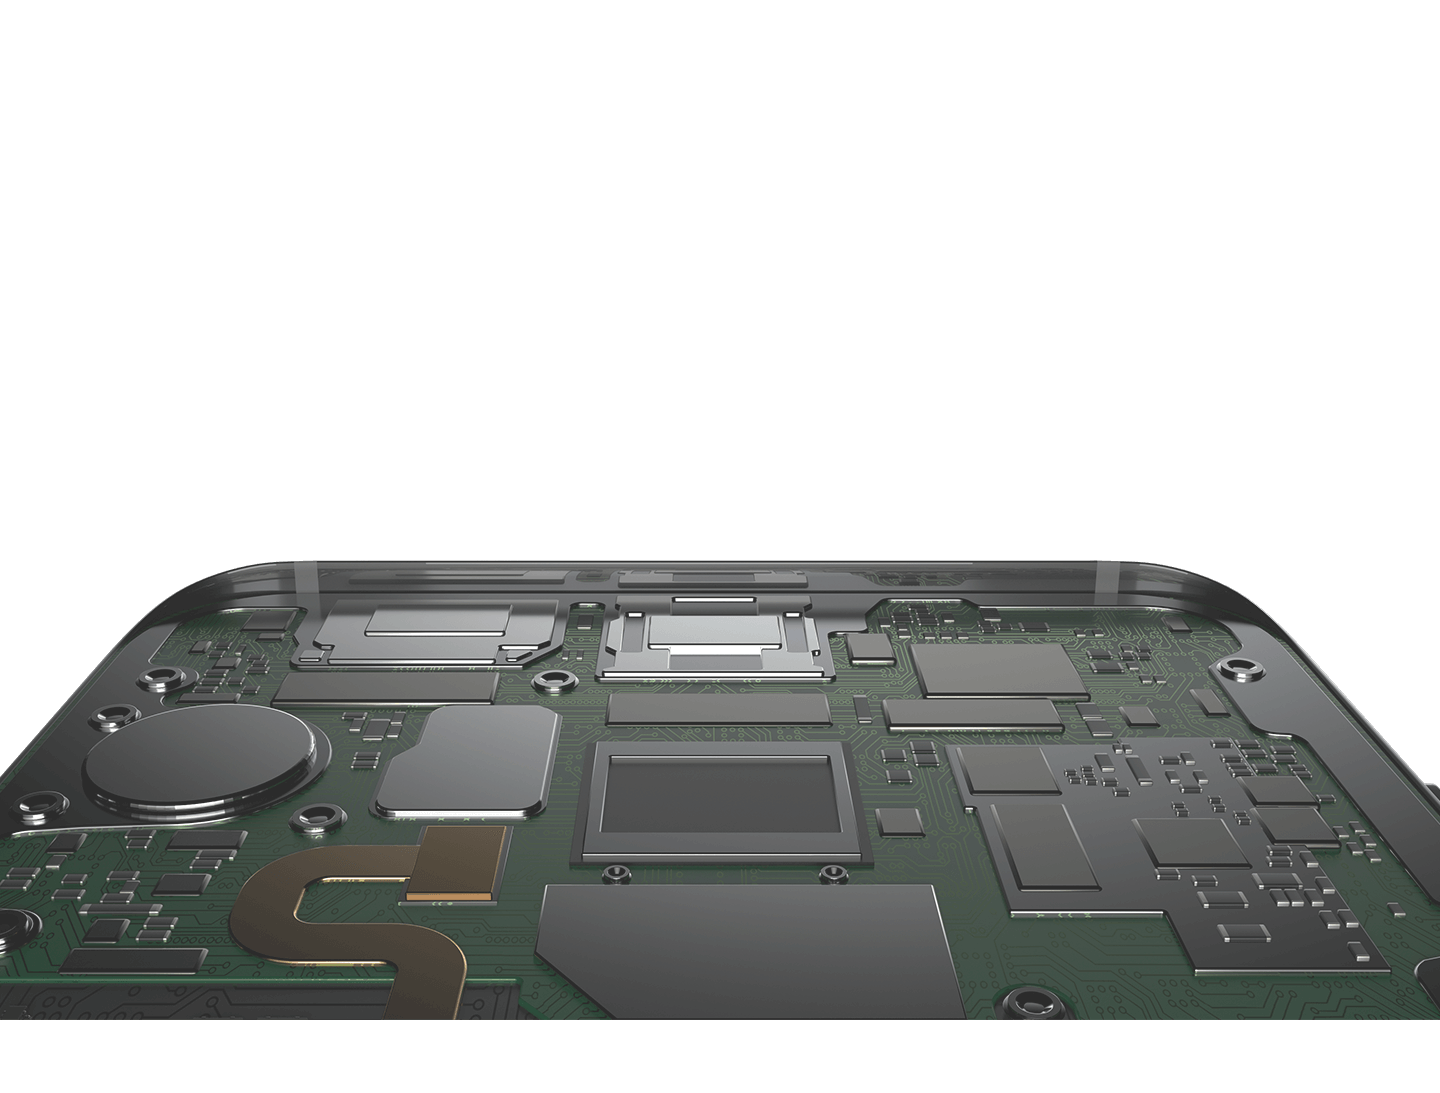 Motion showing hardware inside the smartphone and rear camera module parts are layered on top of ISOCELL image sensor